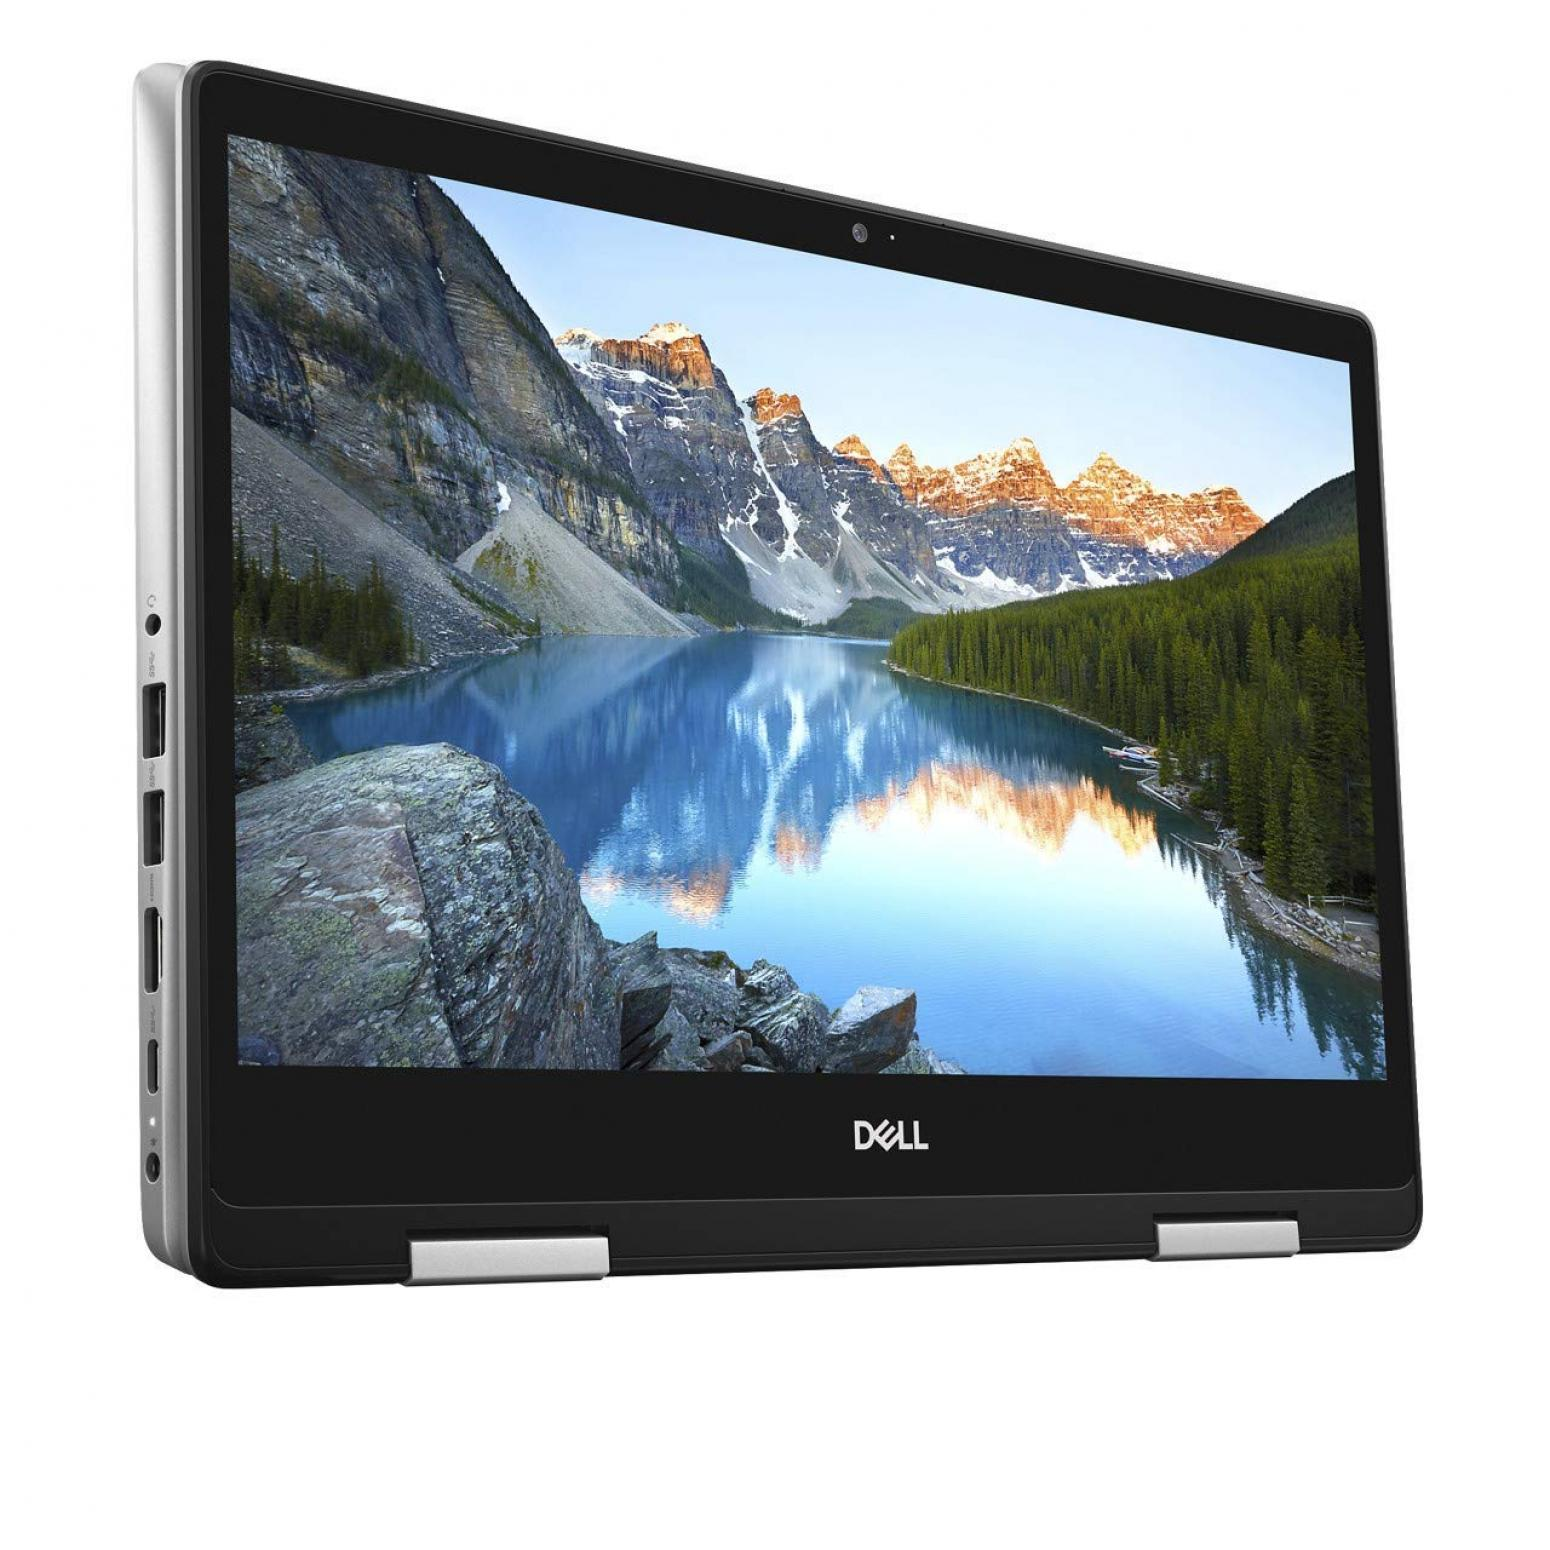 Ordinateur portable Dell Inspiron 14 5482 2-en-1 - SSD 256 Go, Core i3 Turbo Whiskey Lake - photo 9